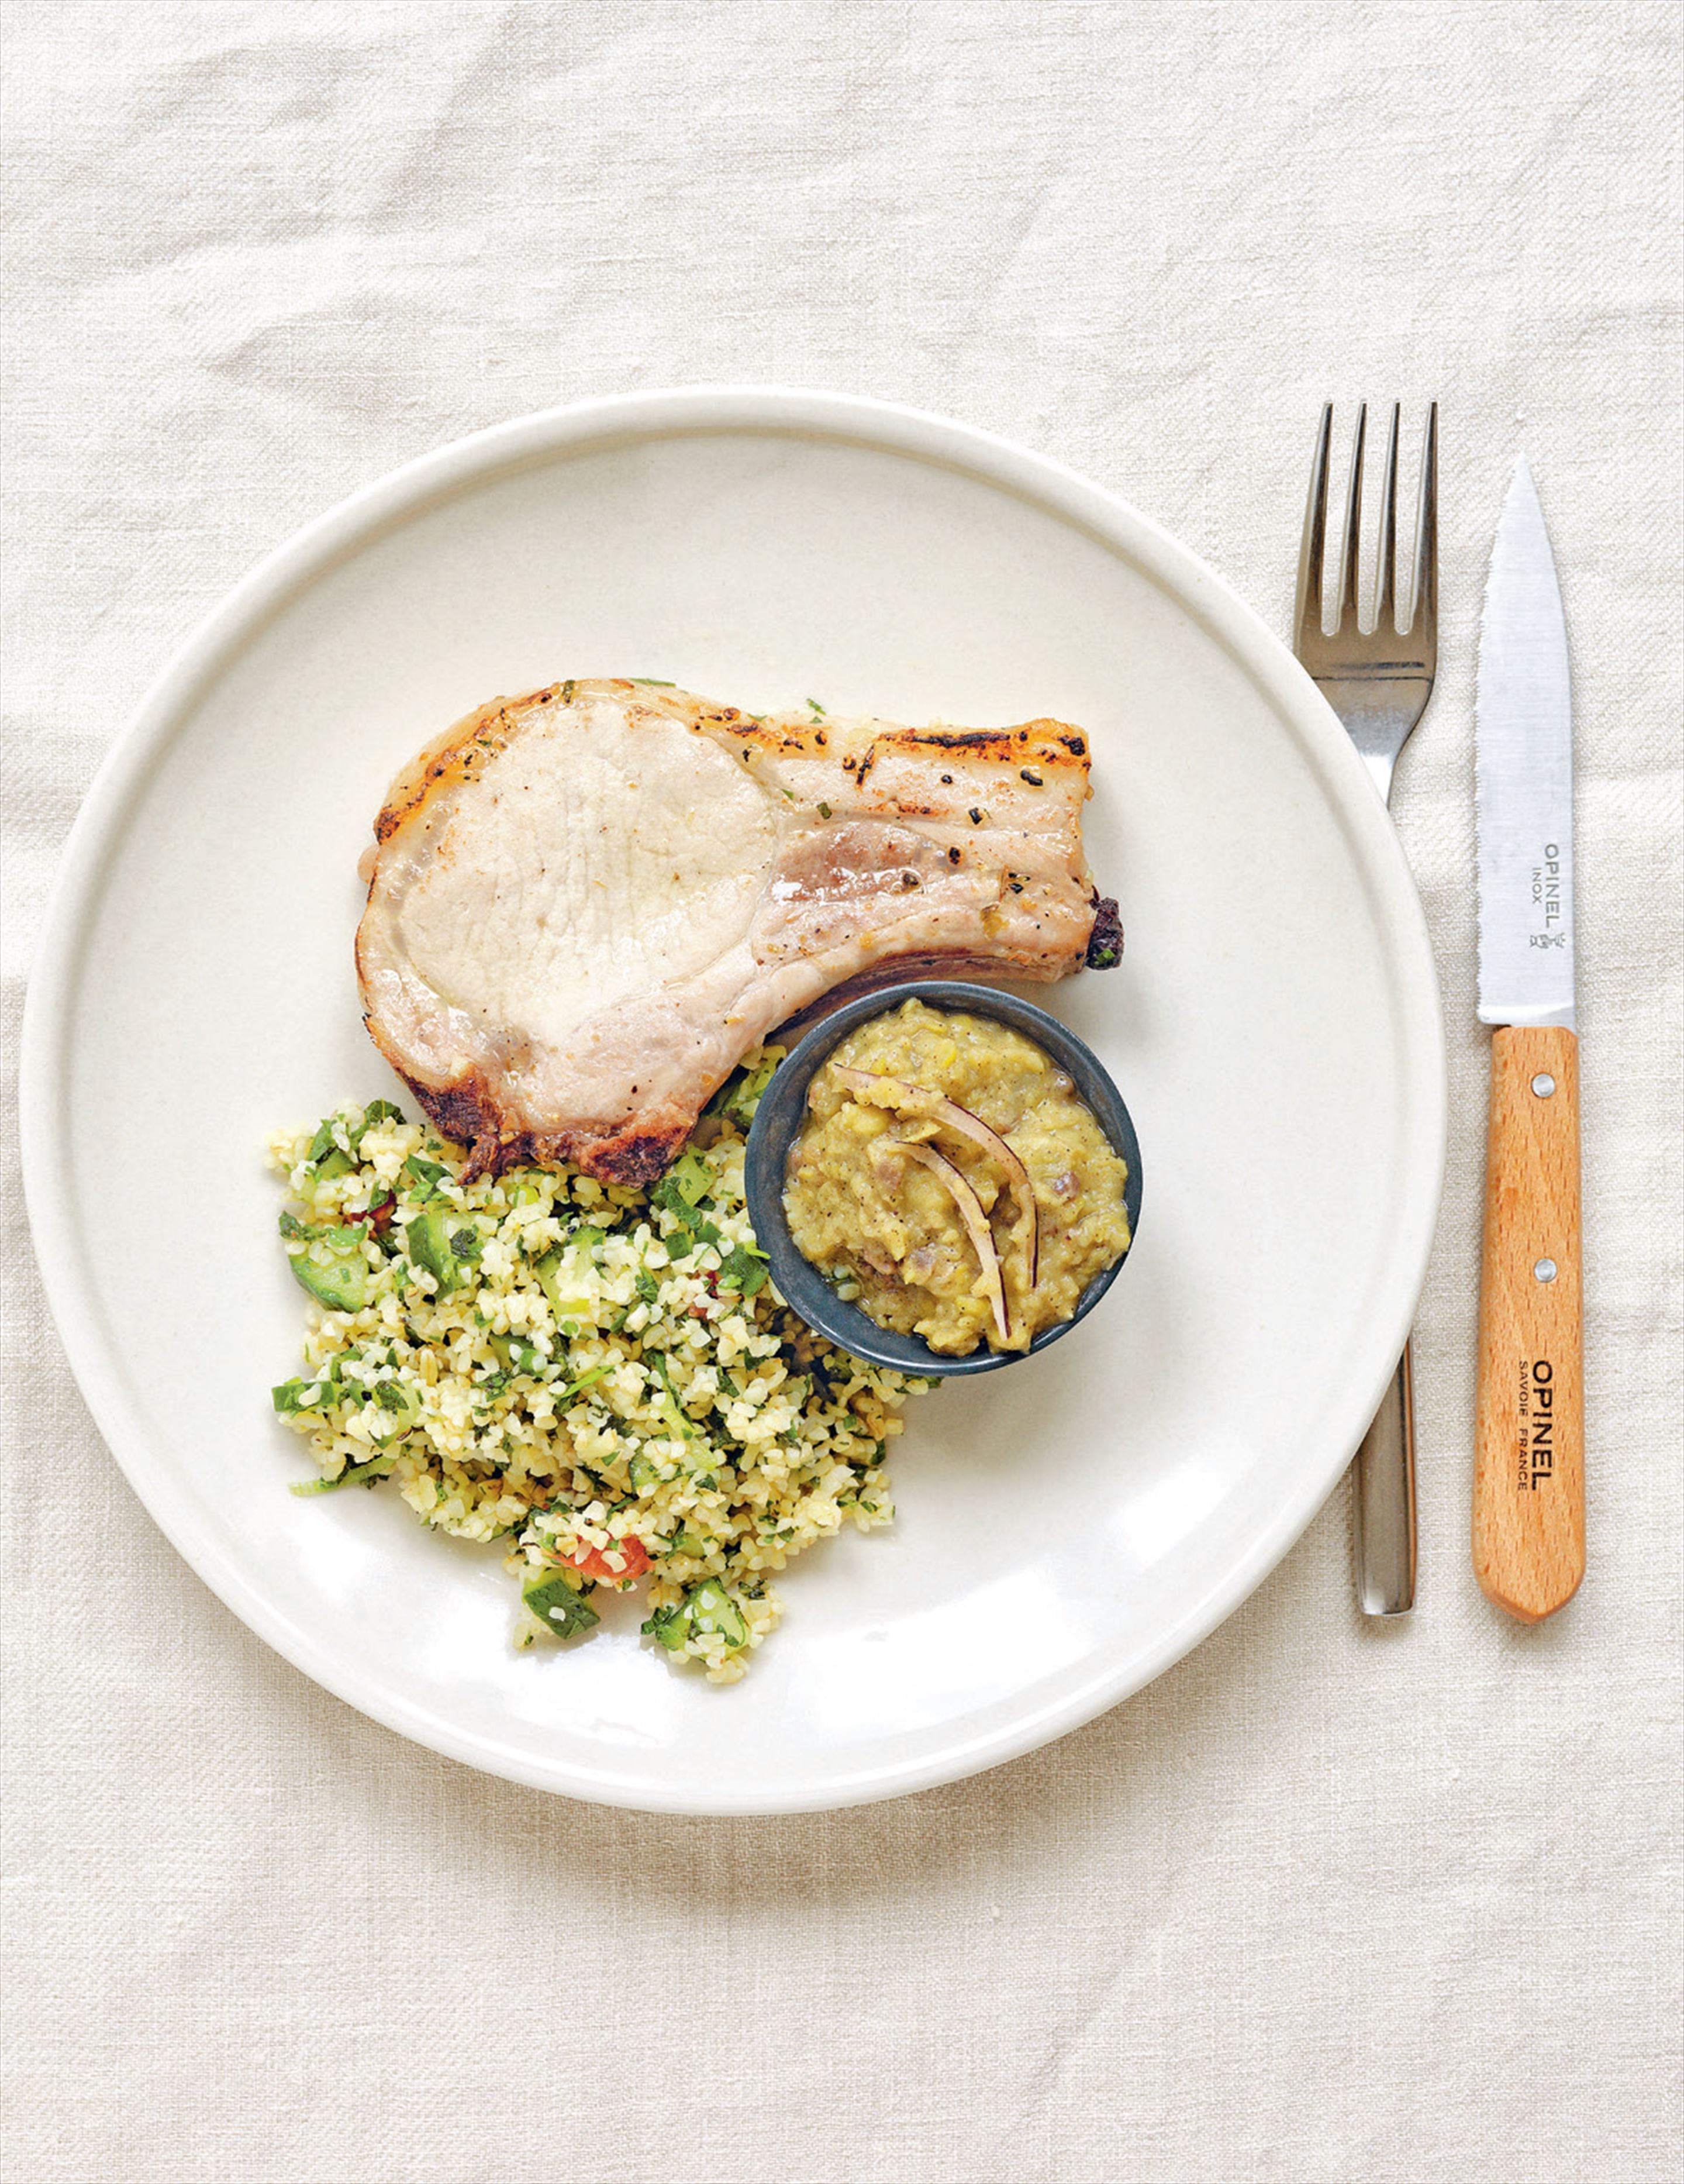 Oregano & lemon pork chops with garlicky split pea purée & tabouleh